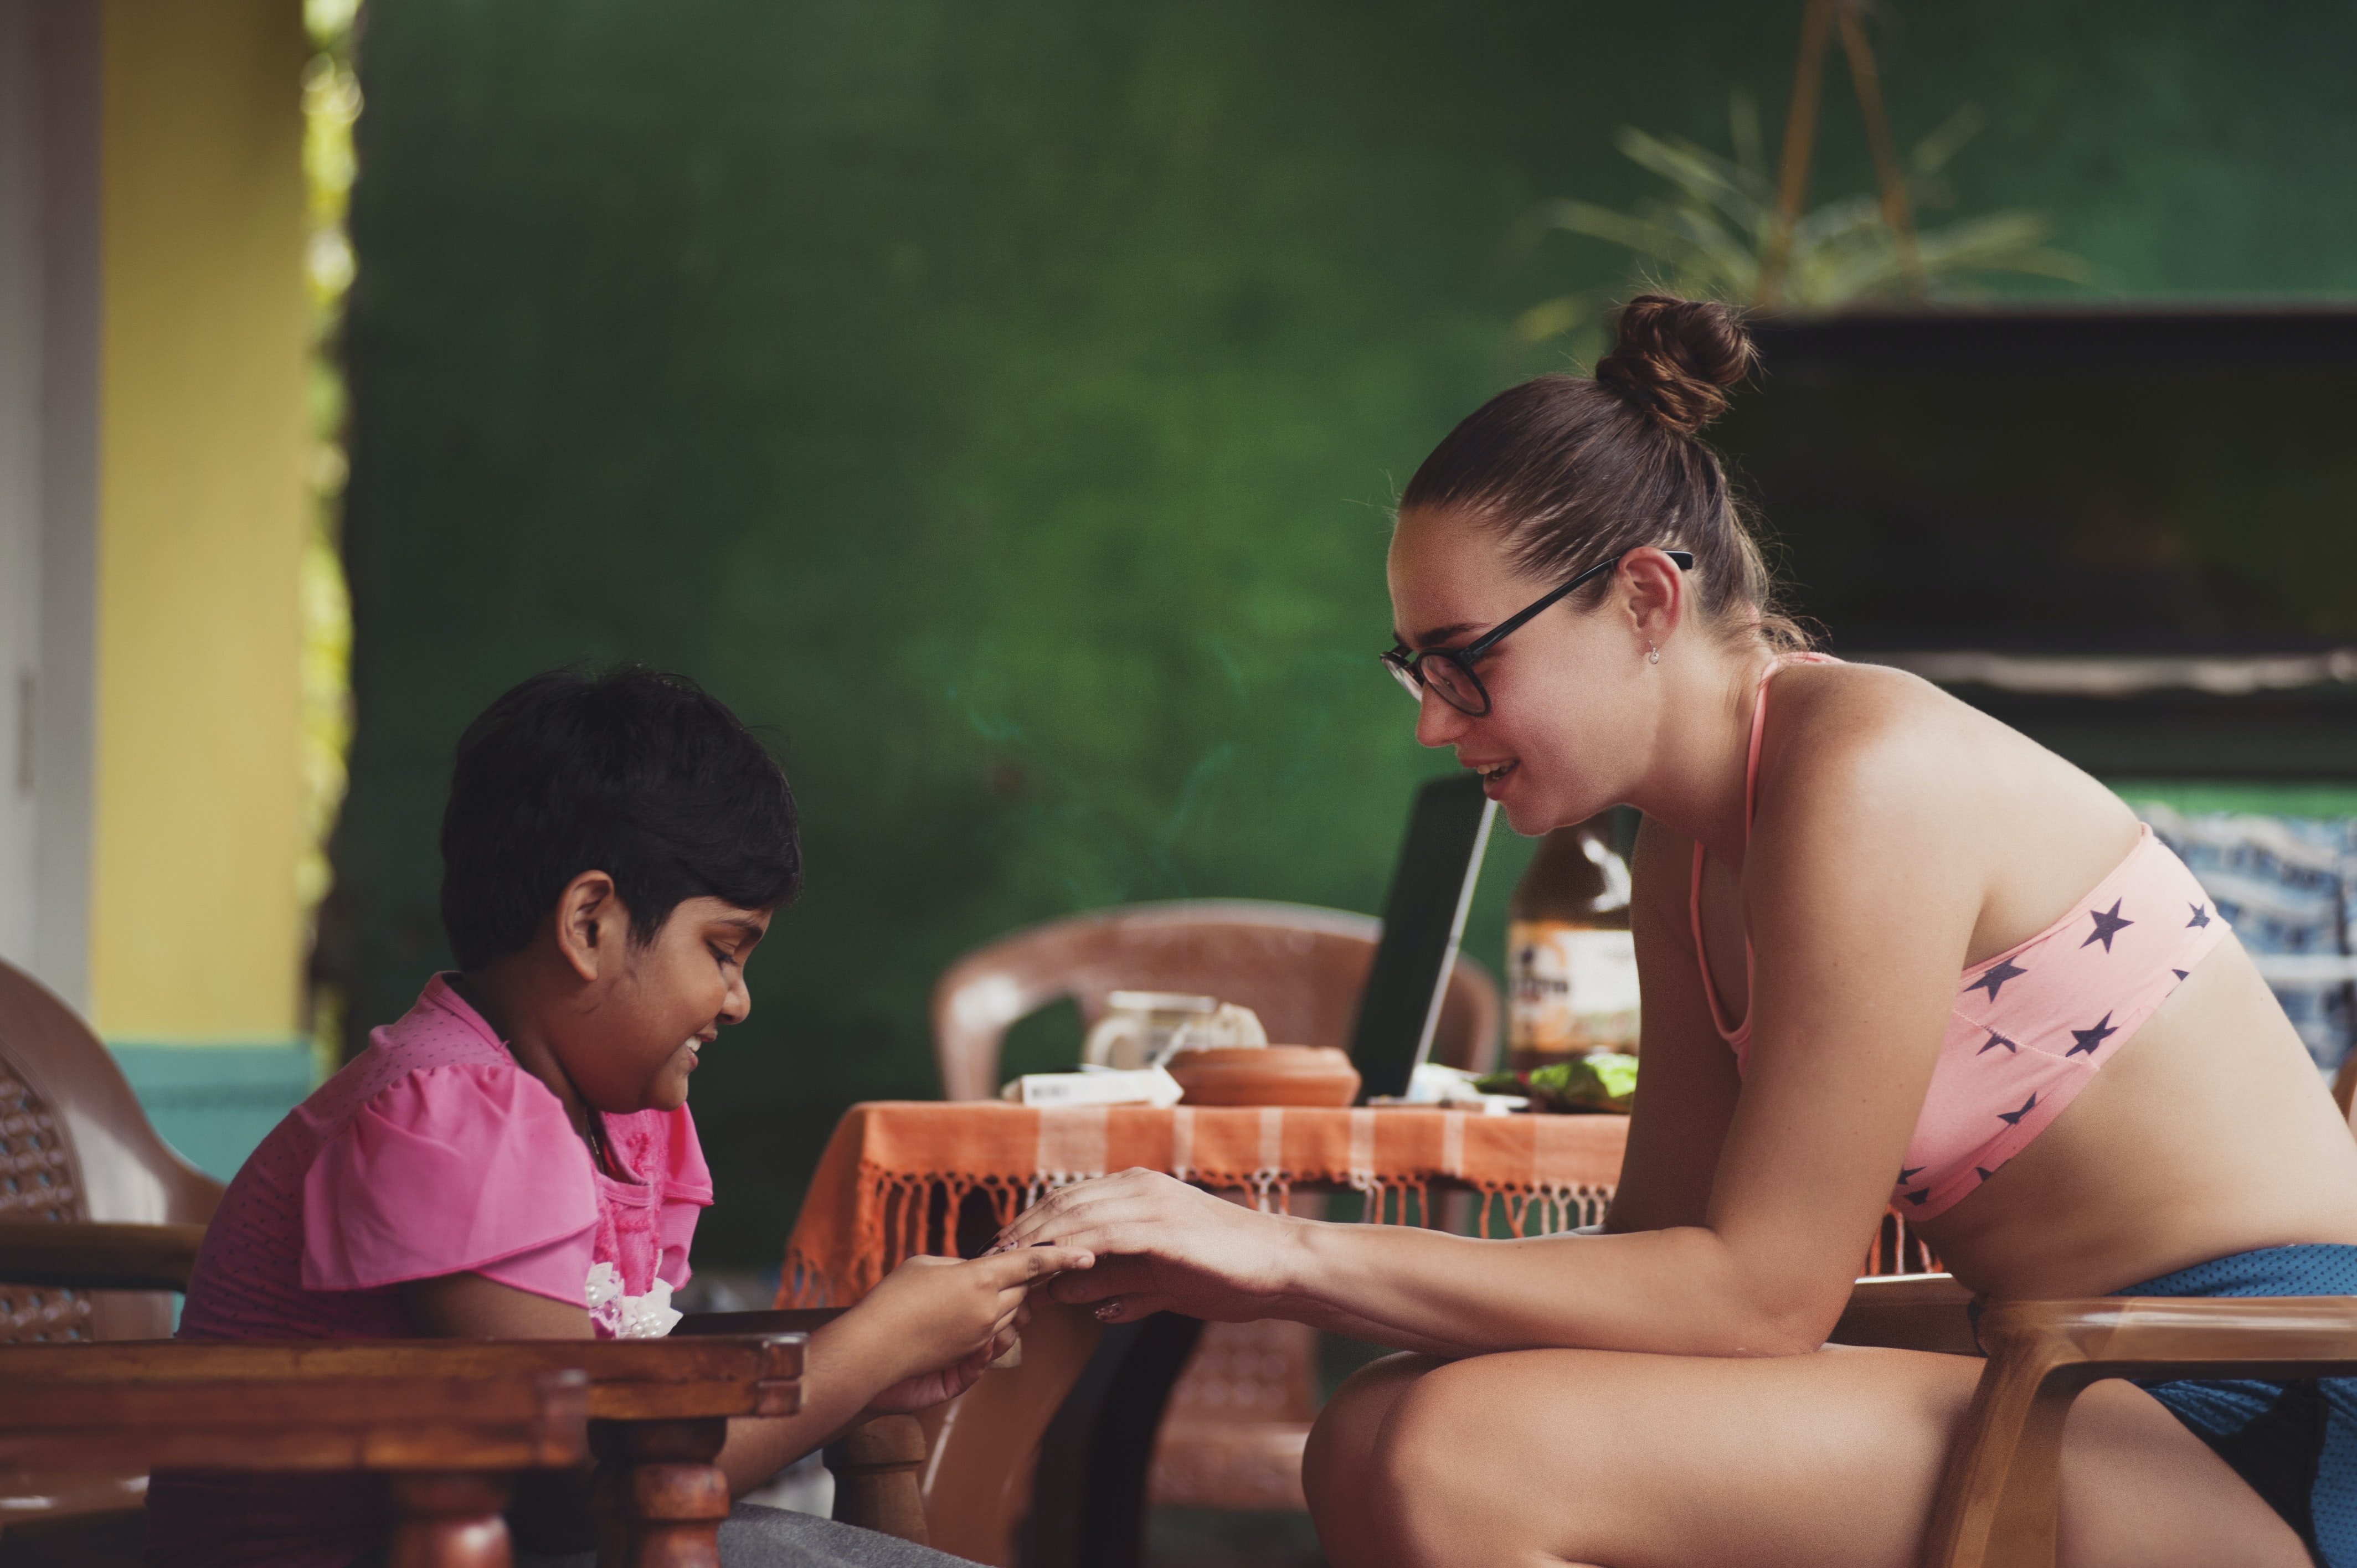 A woman and a child sitting in chairs opposite to each other and playing